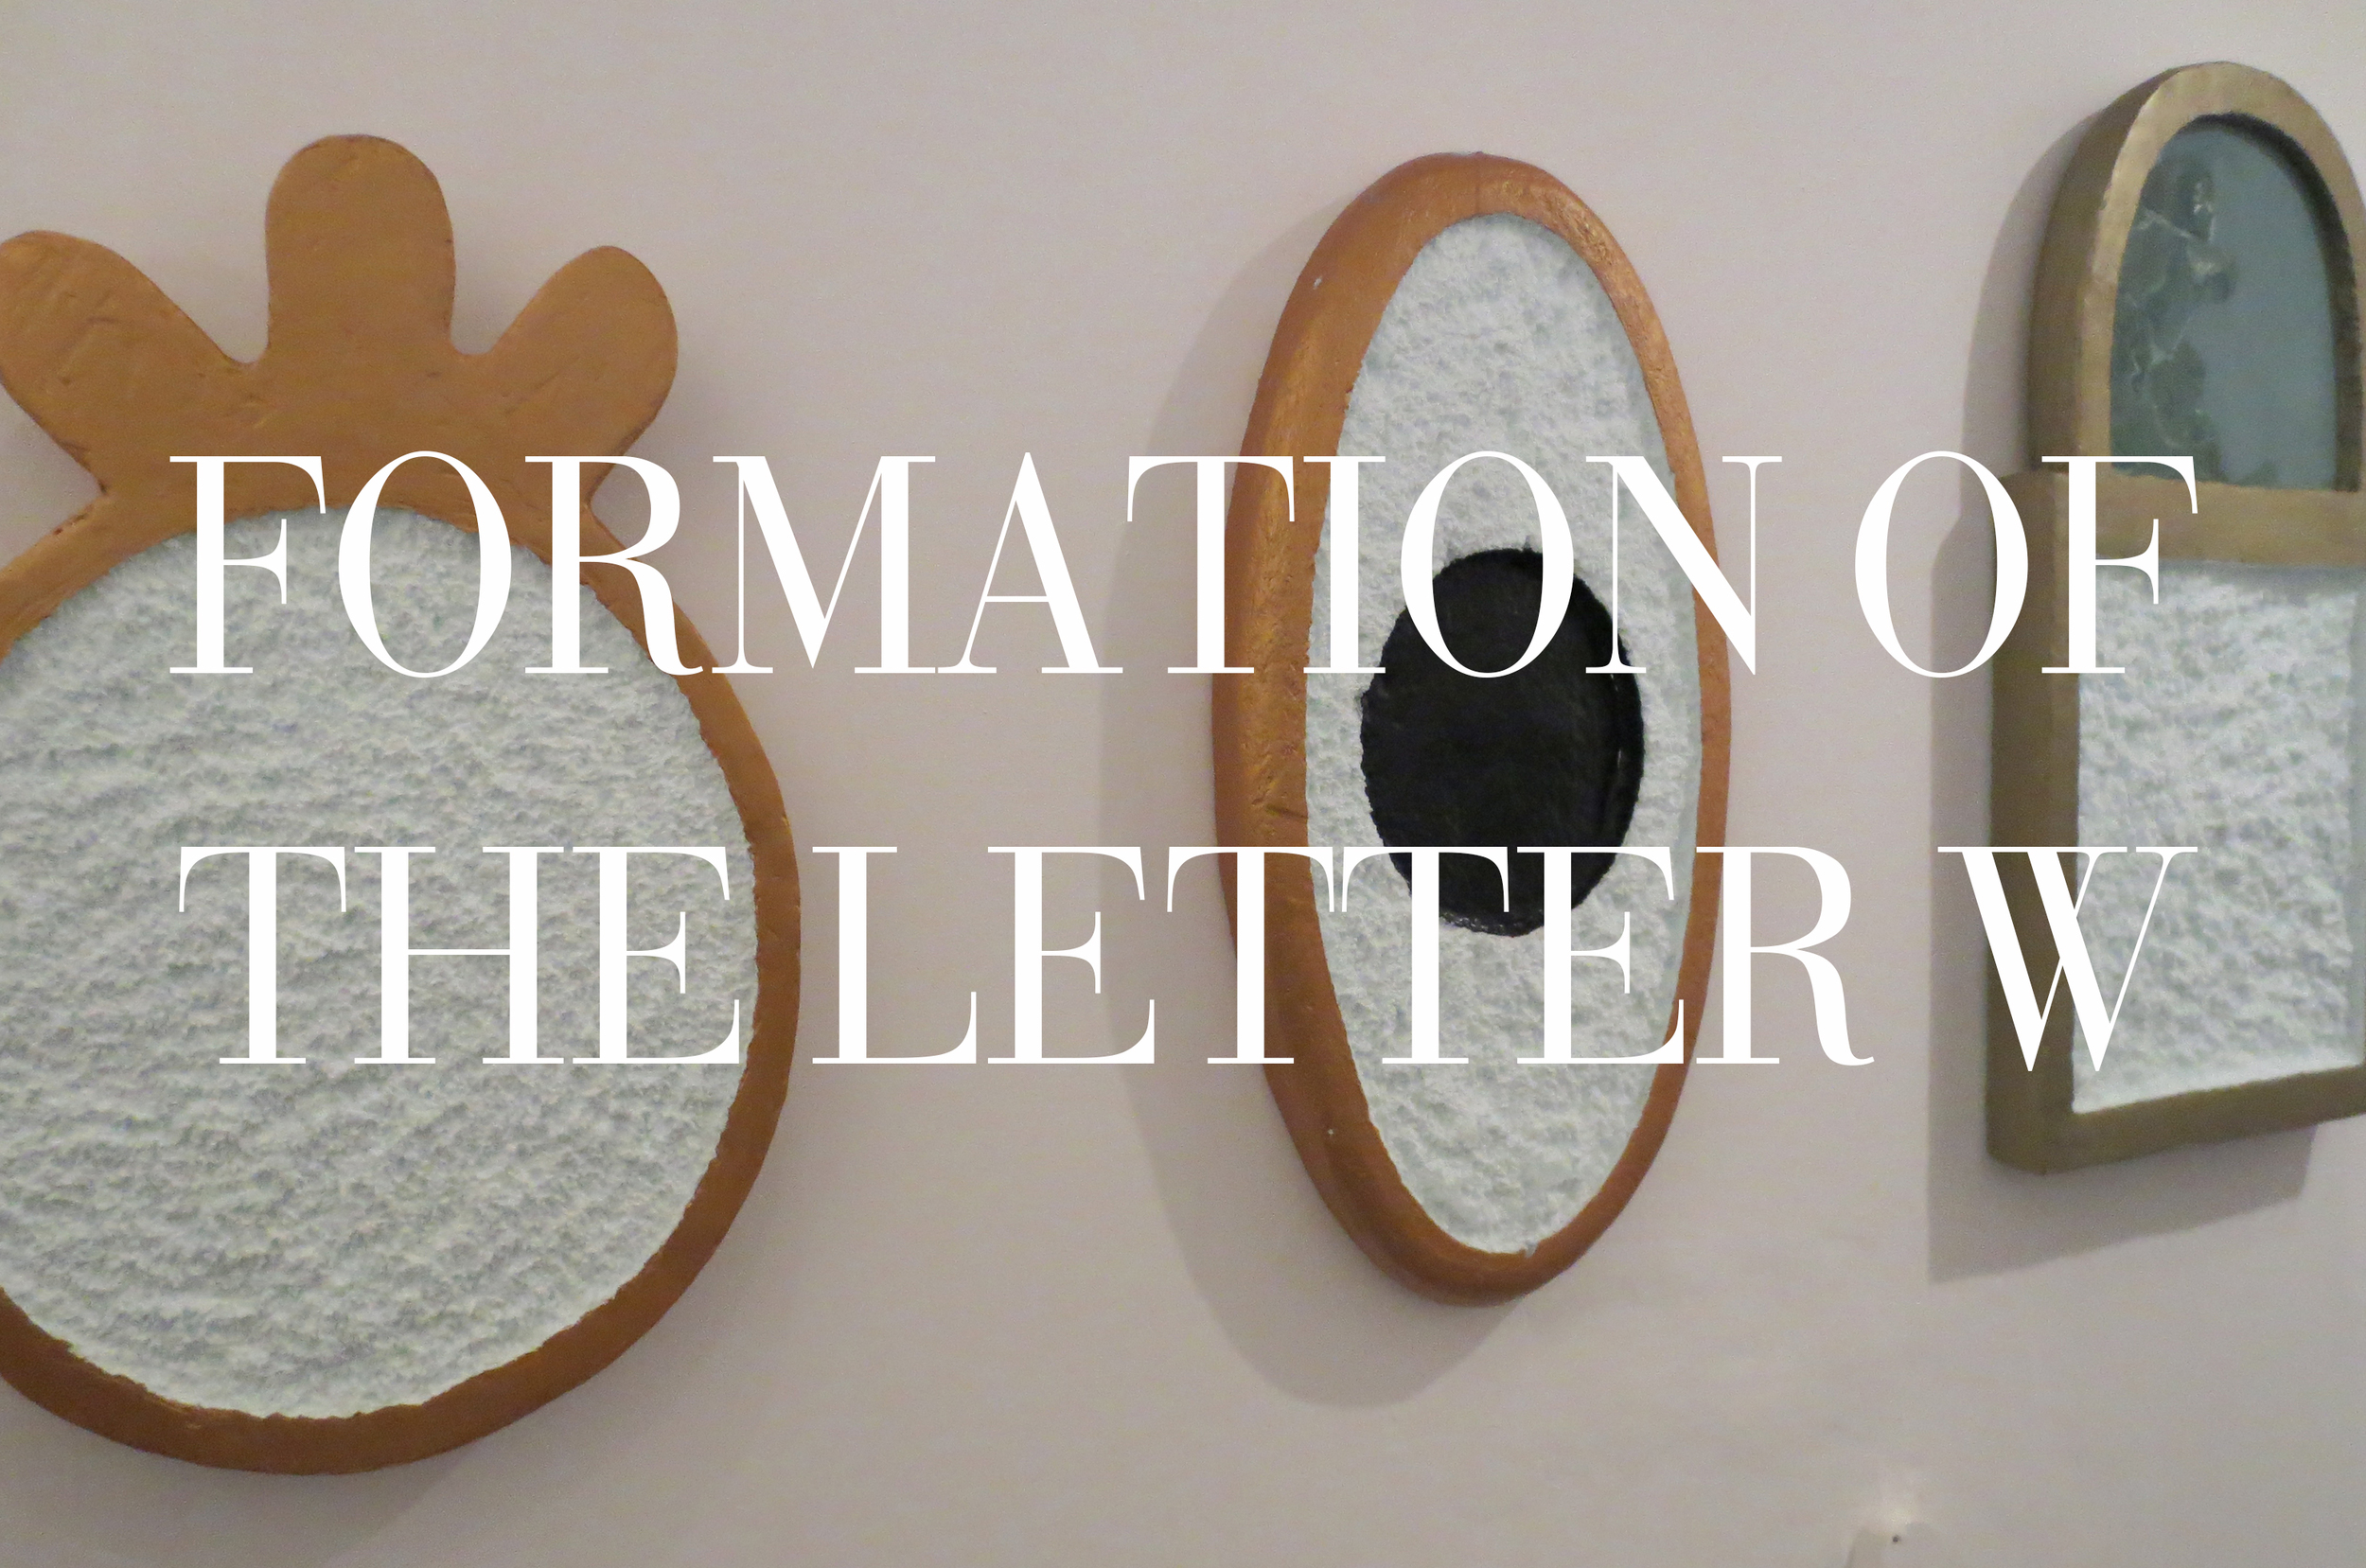 ART ON REVIEW  Surrounded by beautiful people and cheap beer, Brit Bachmann reviews Nick Howe's  Formation of the Letter W  art exhibit at Avenue Gallery.